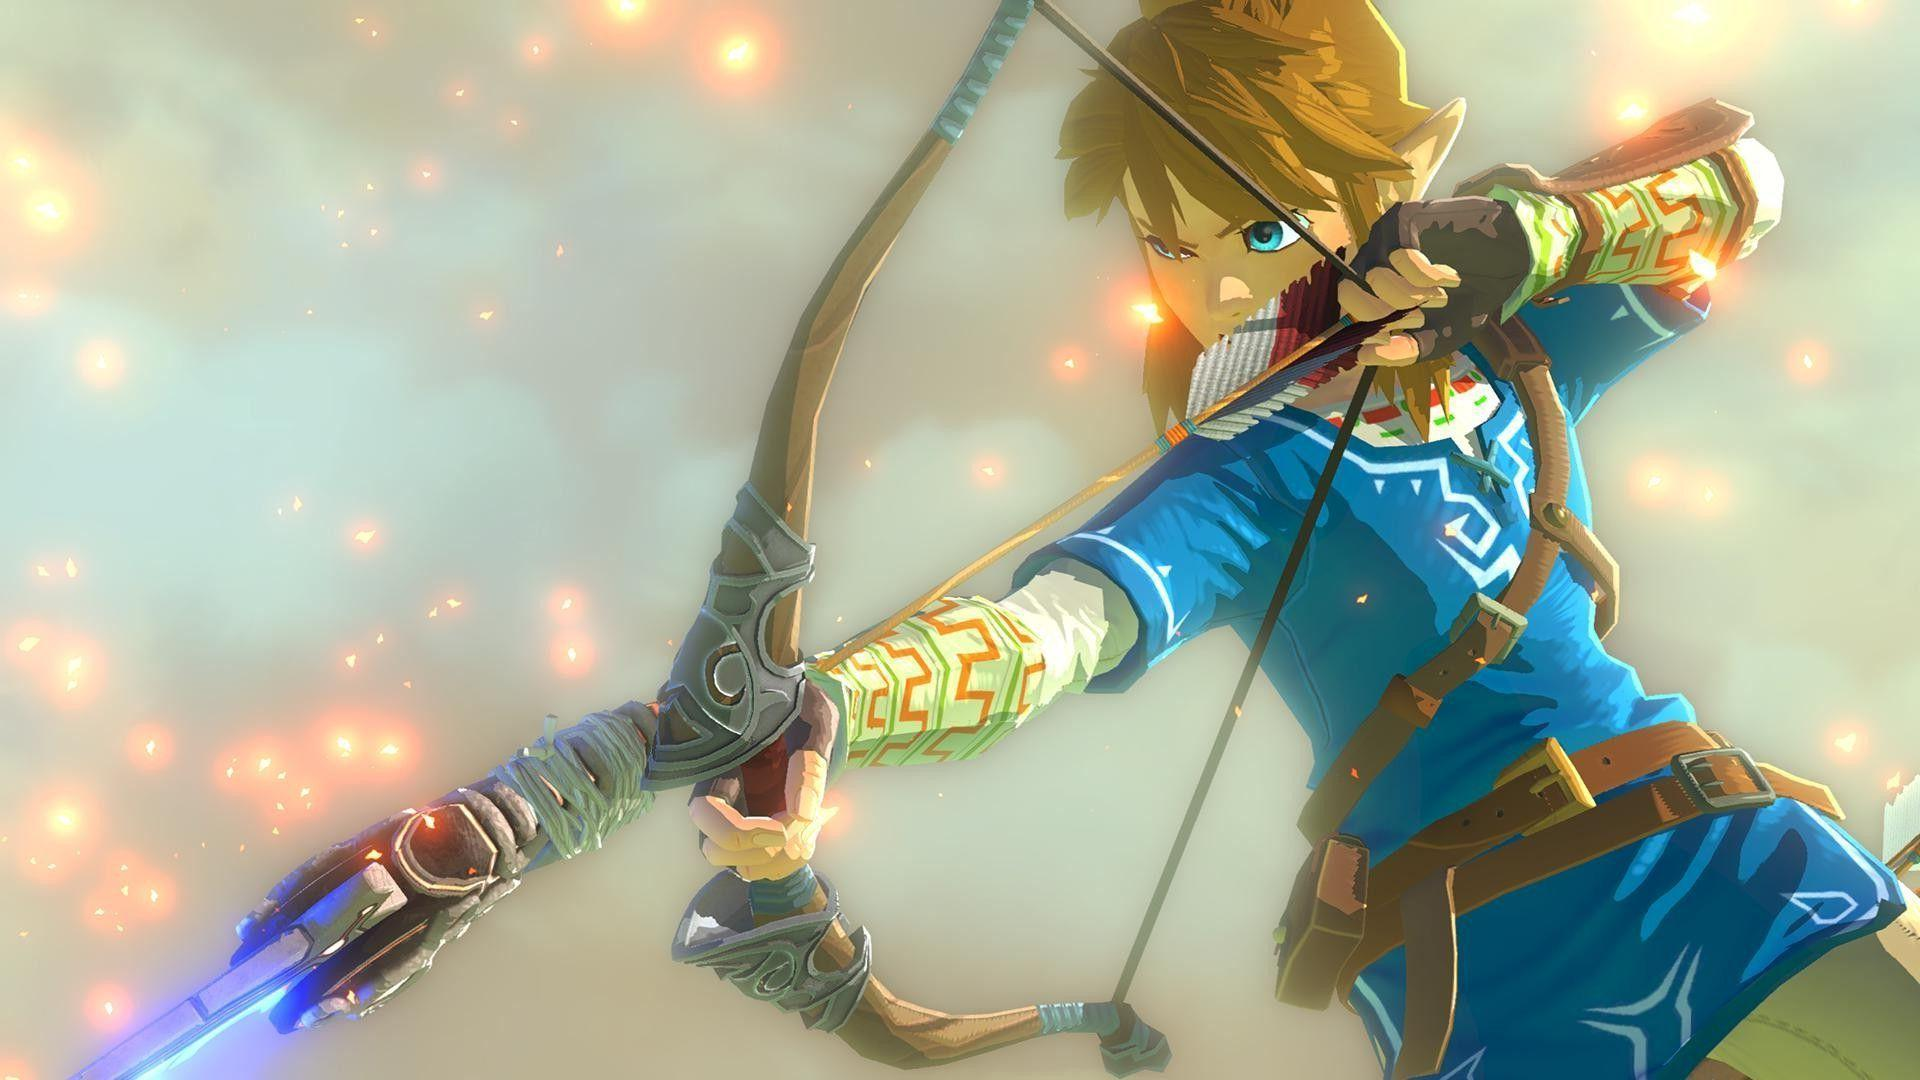 hd zelda wallpapers - photo #33